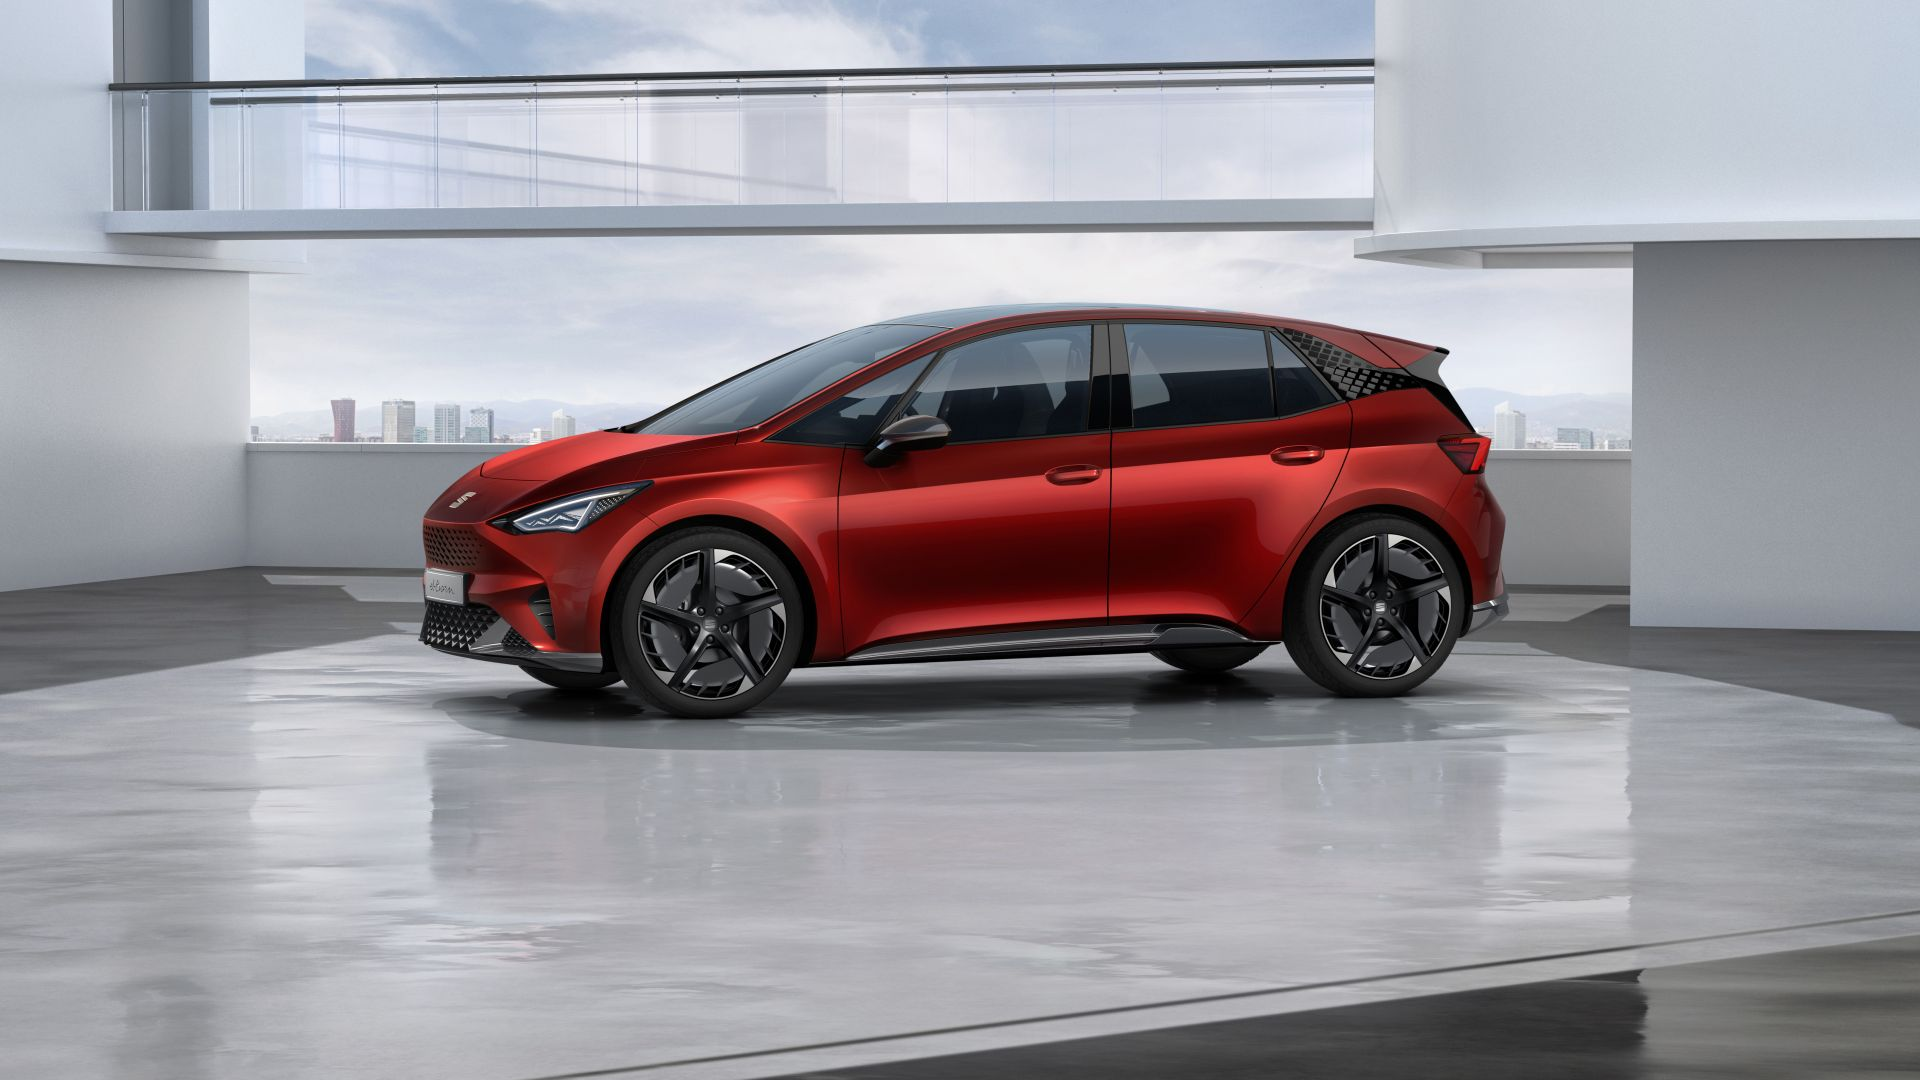 Seat el-Born, electric car, Geneva Motor Show 2019, 5K (horizontal)